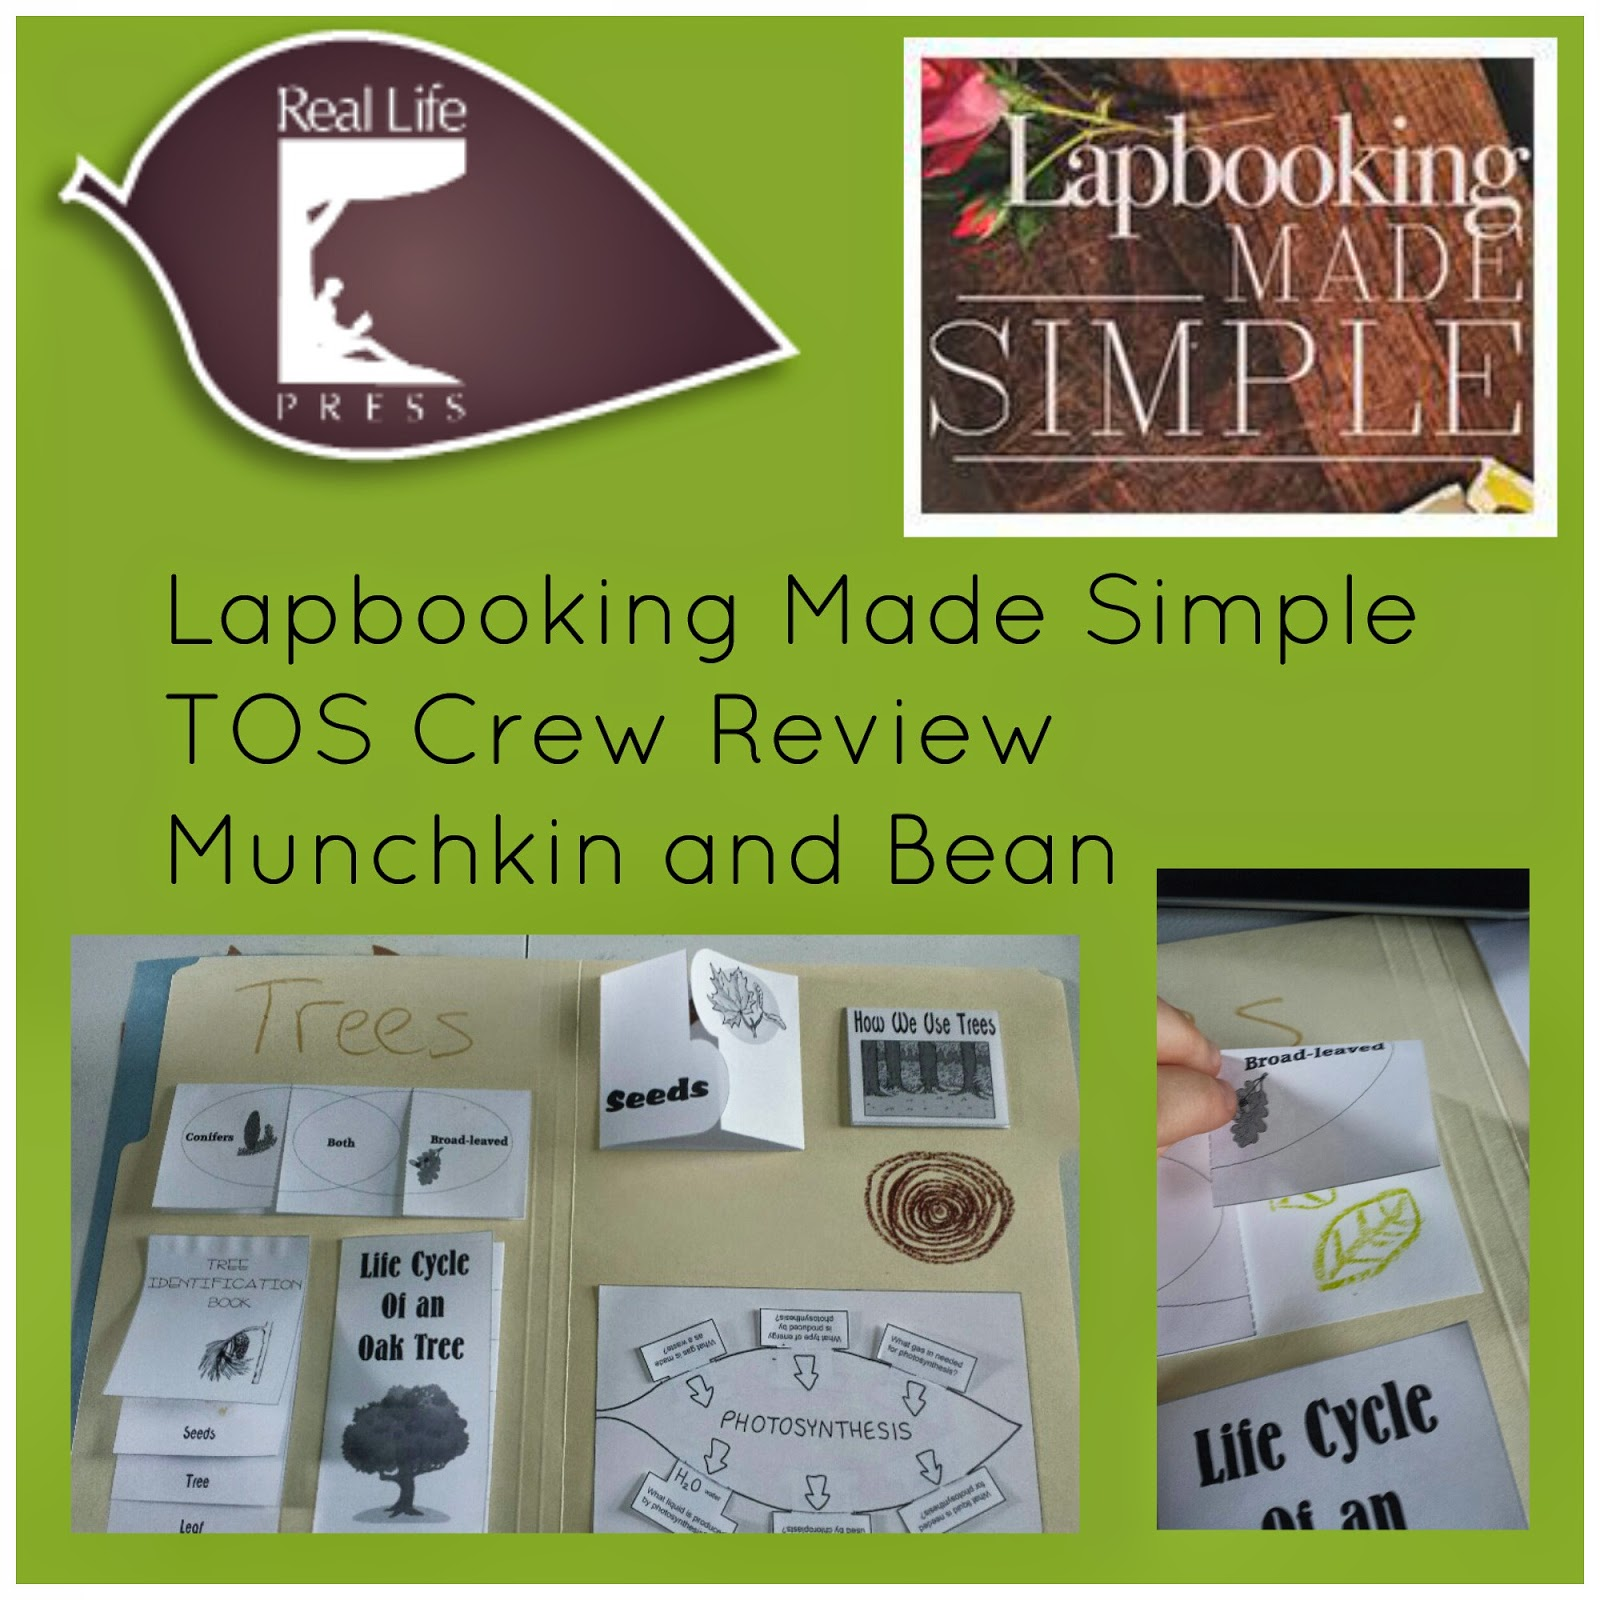 Munchkin and Bean: Lapbooking Made Simple Review